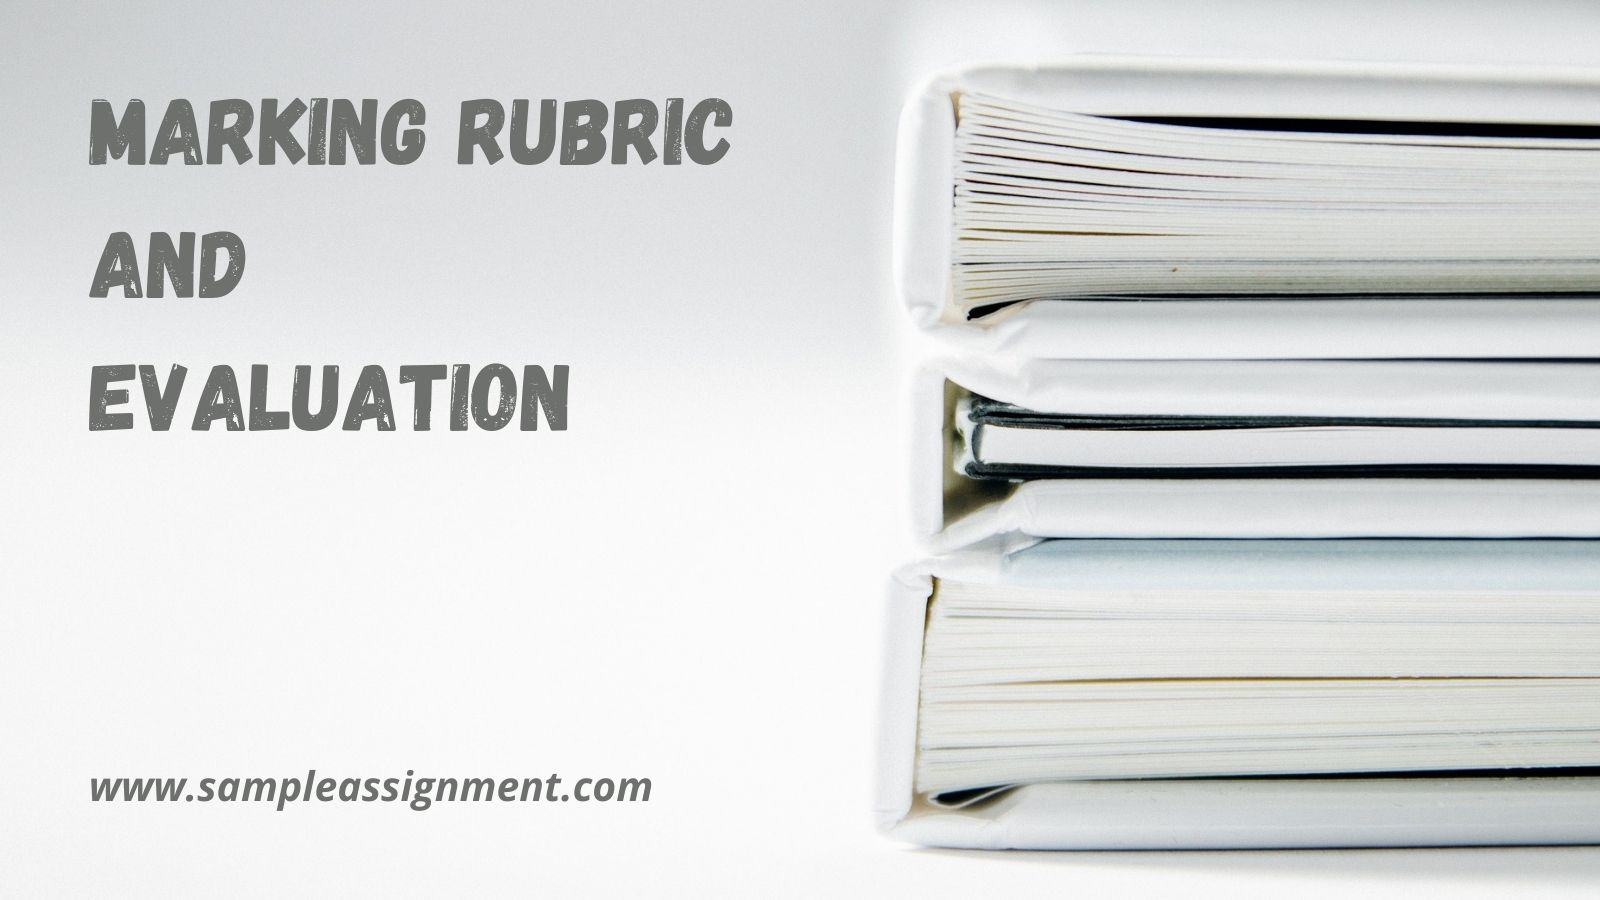 What Is A Marking Rubric And Evaluation?